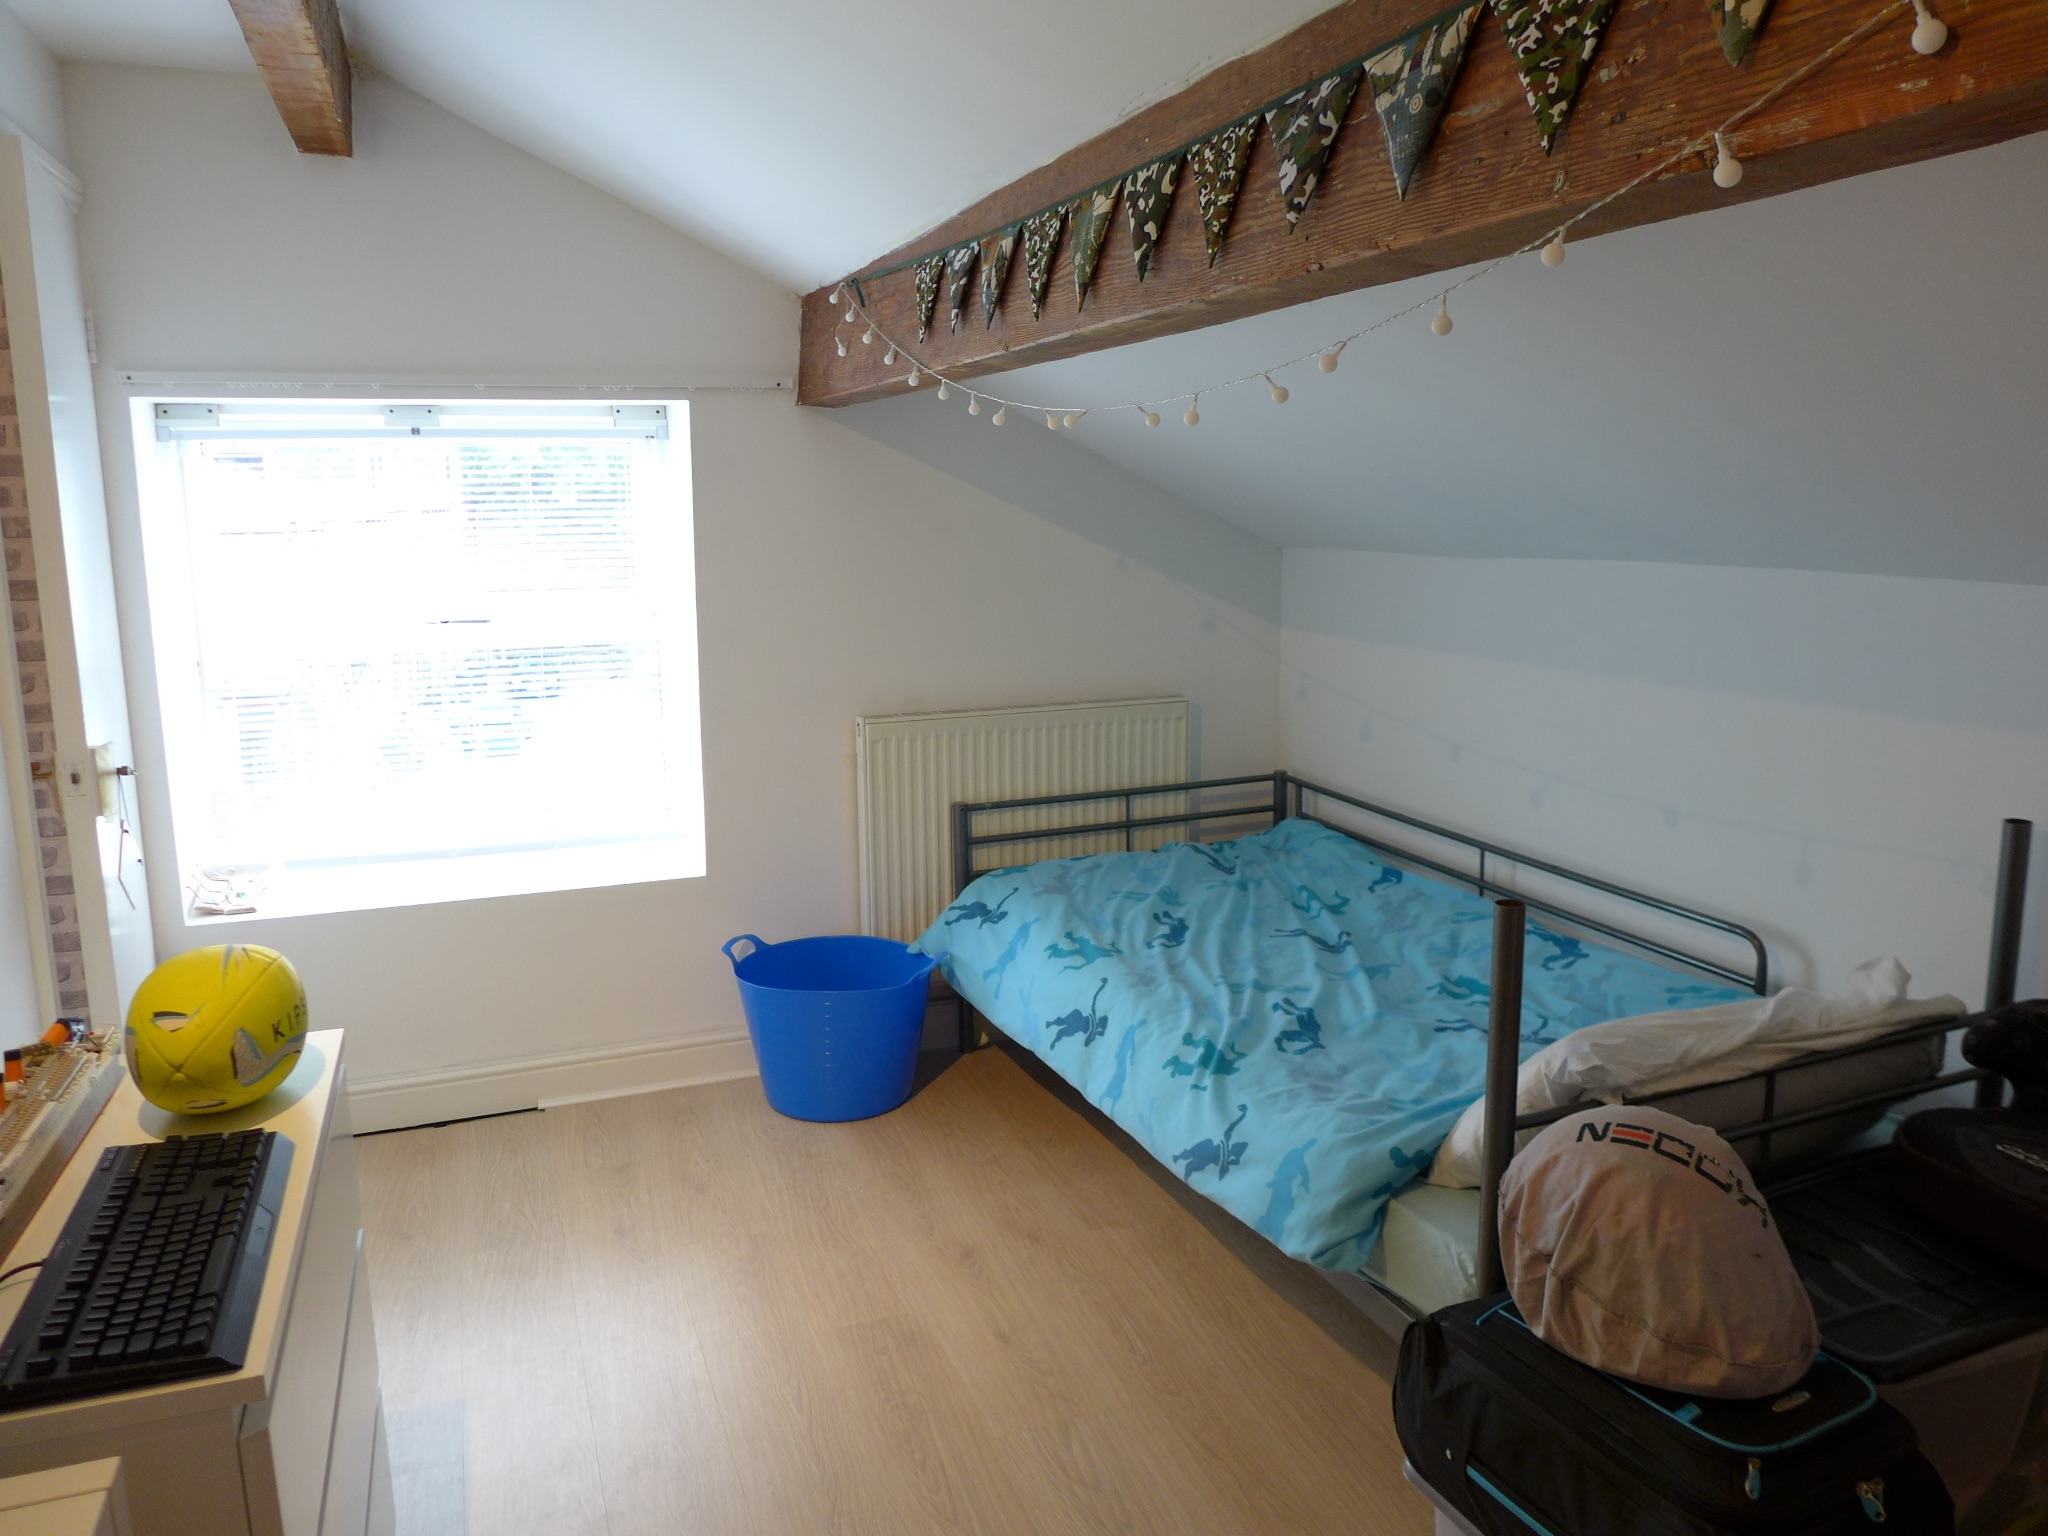 3 bedroom end terraced house For Sale in Todmorden - Photograph 16.